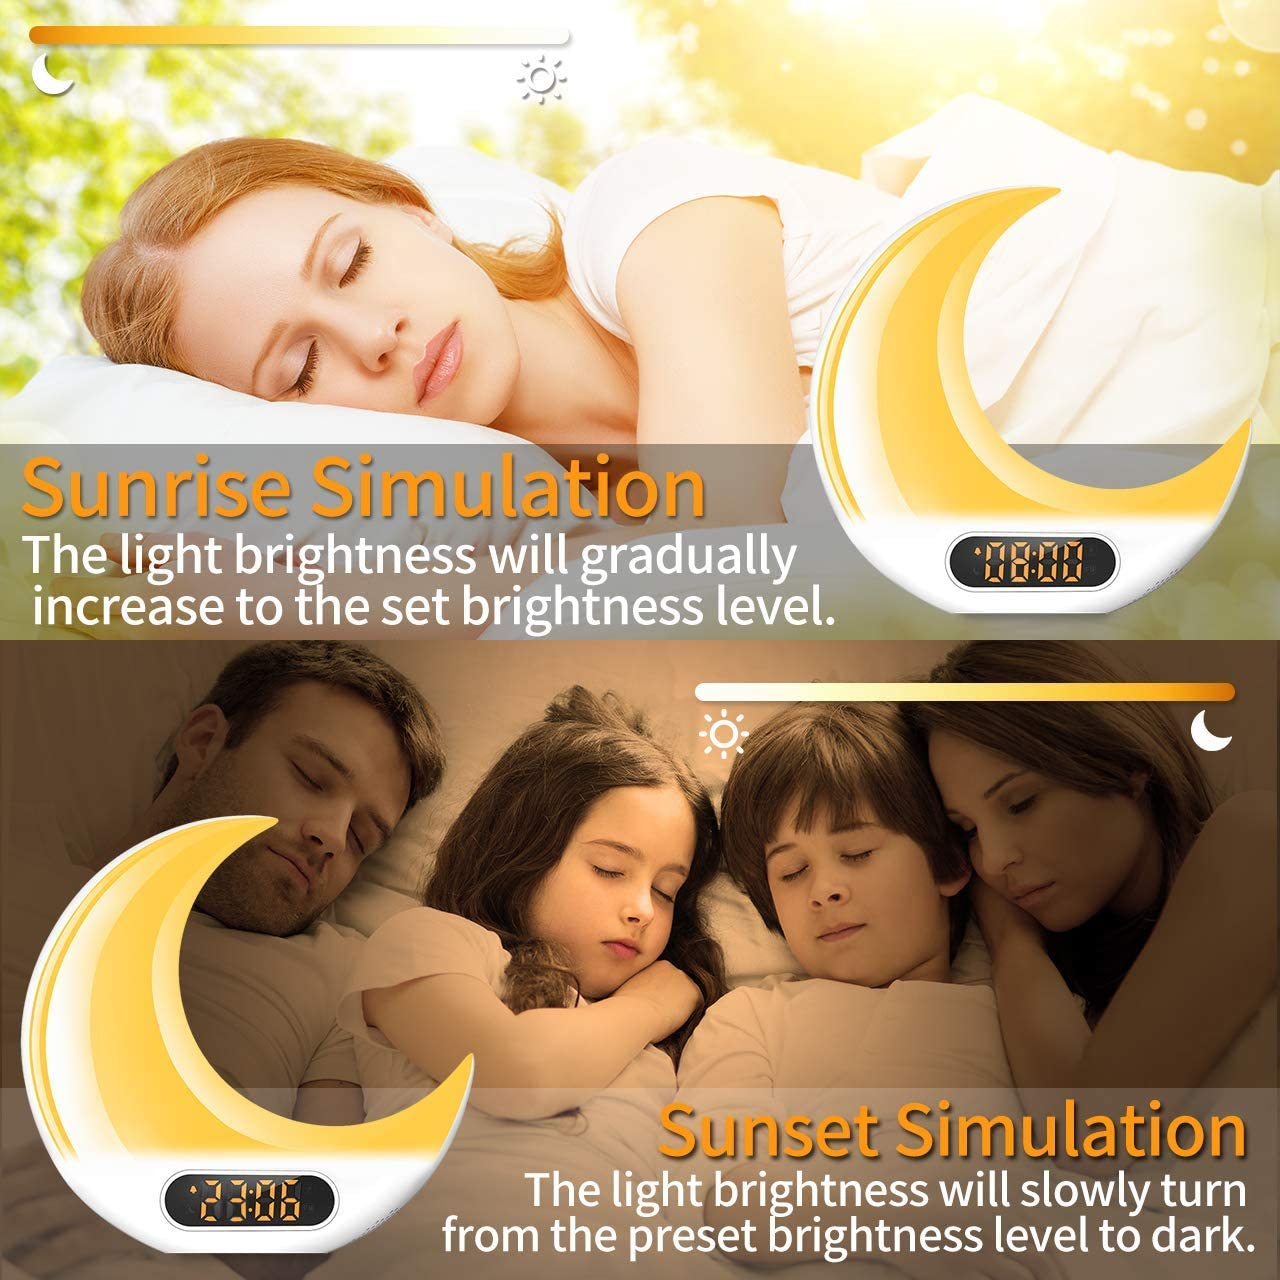 FM Radio Sunrise//Sunset Simulation Table Bedside Night Lamp with Separated Easy Operation Remote 7 Nature Sounds and Touch Control Function for Kids Elders and Adults Herphia Wake Up Light Alarm Clock